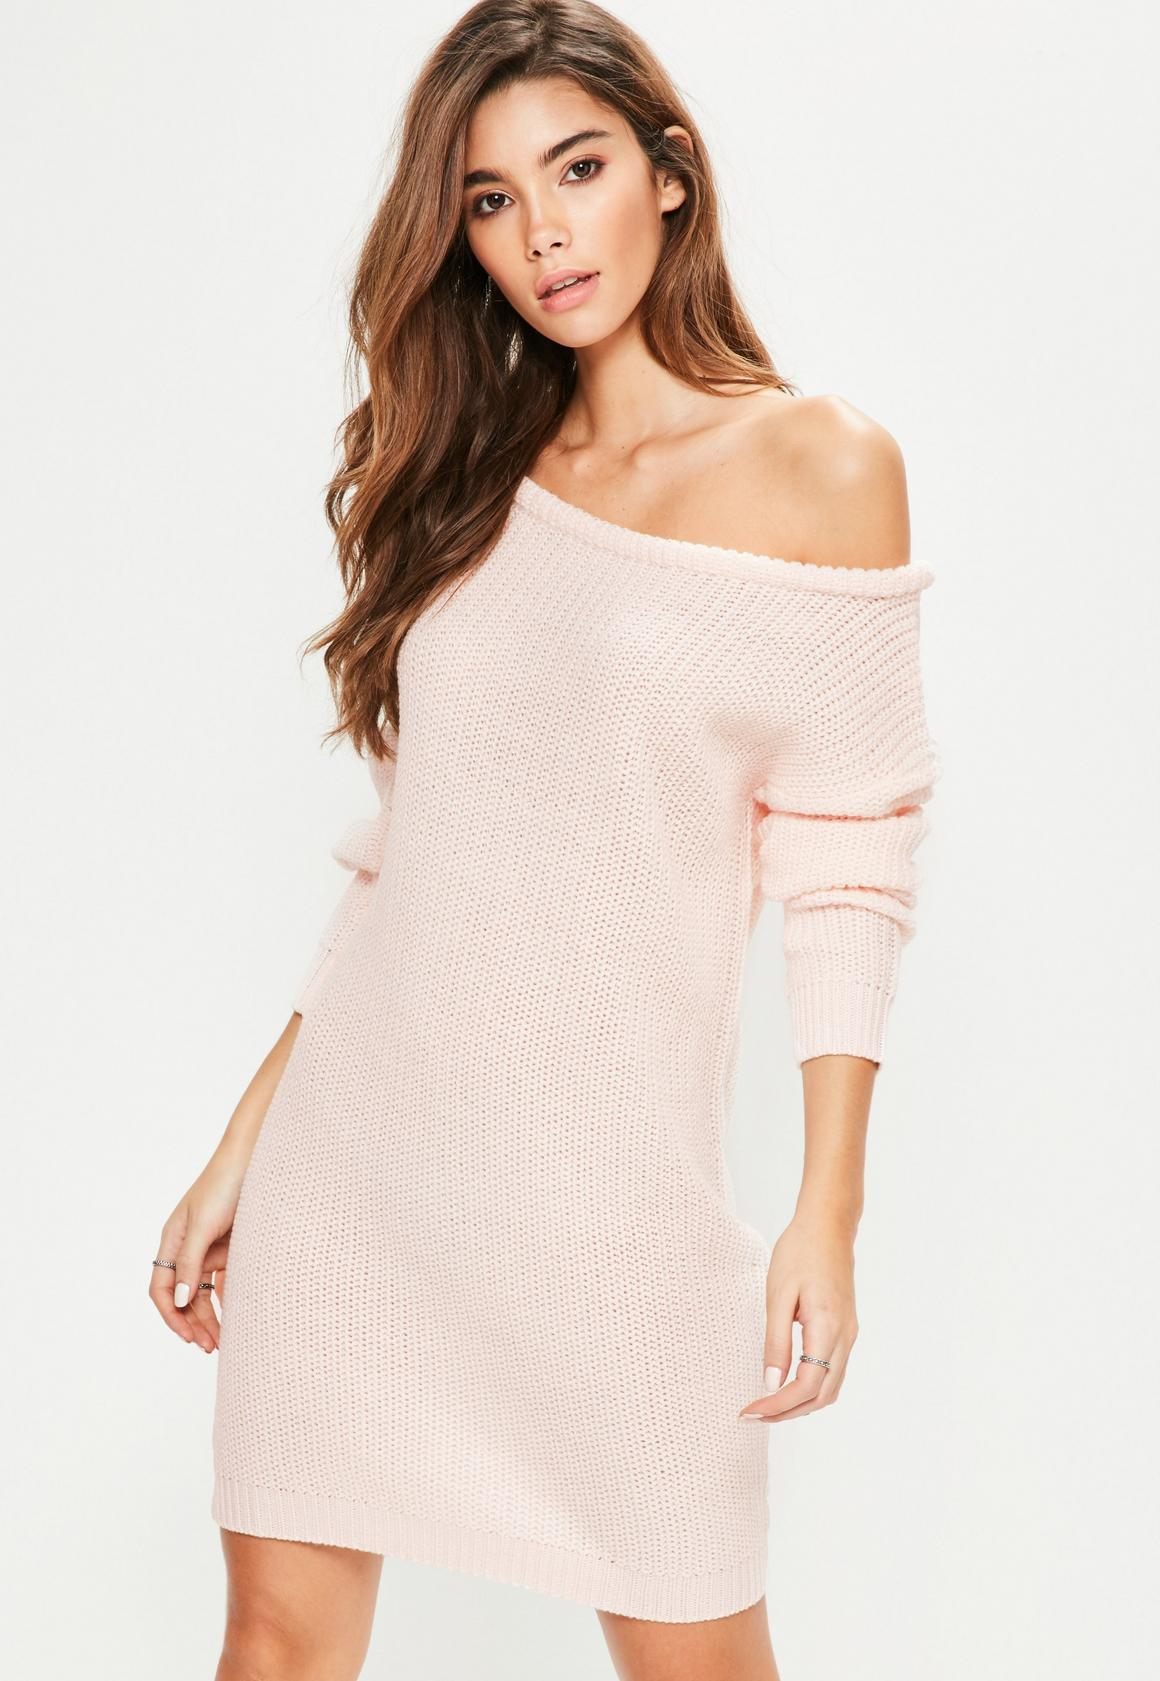 Pink Off Shoulder Knitted Sweater Dress - Missguided